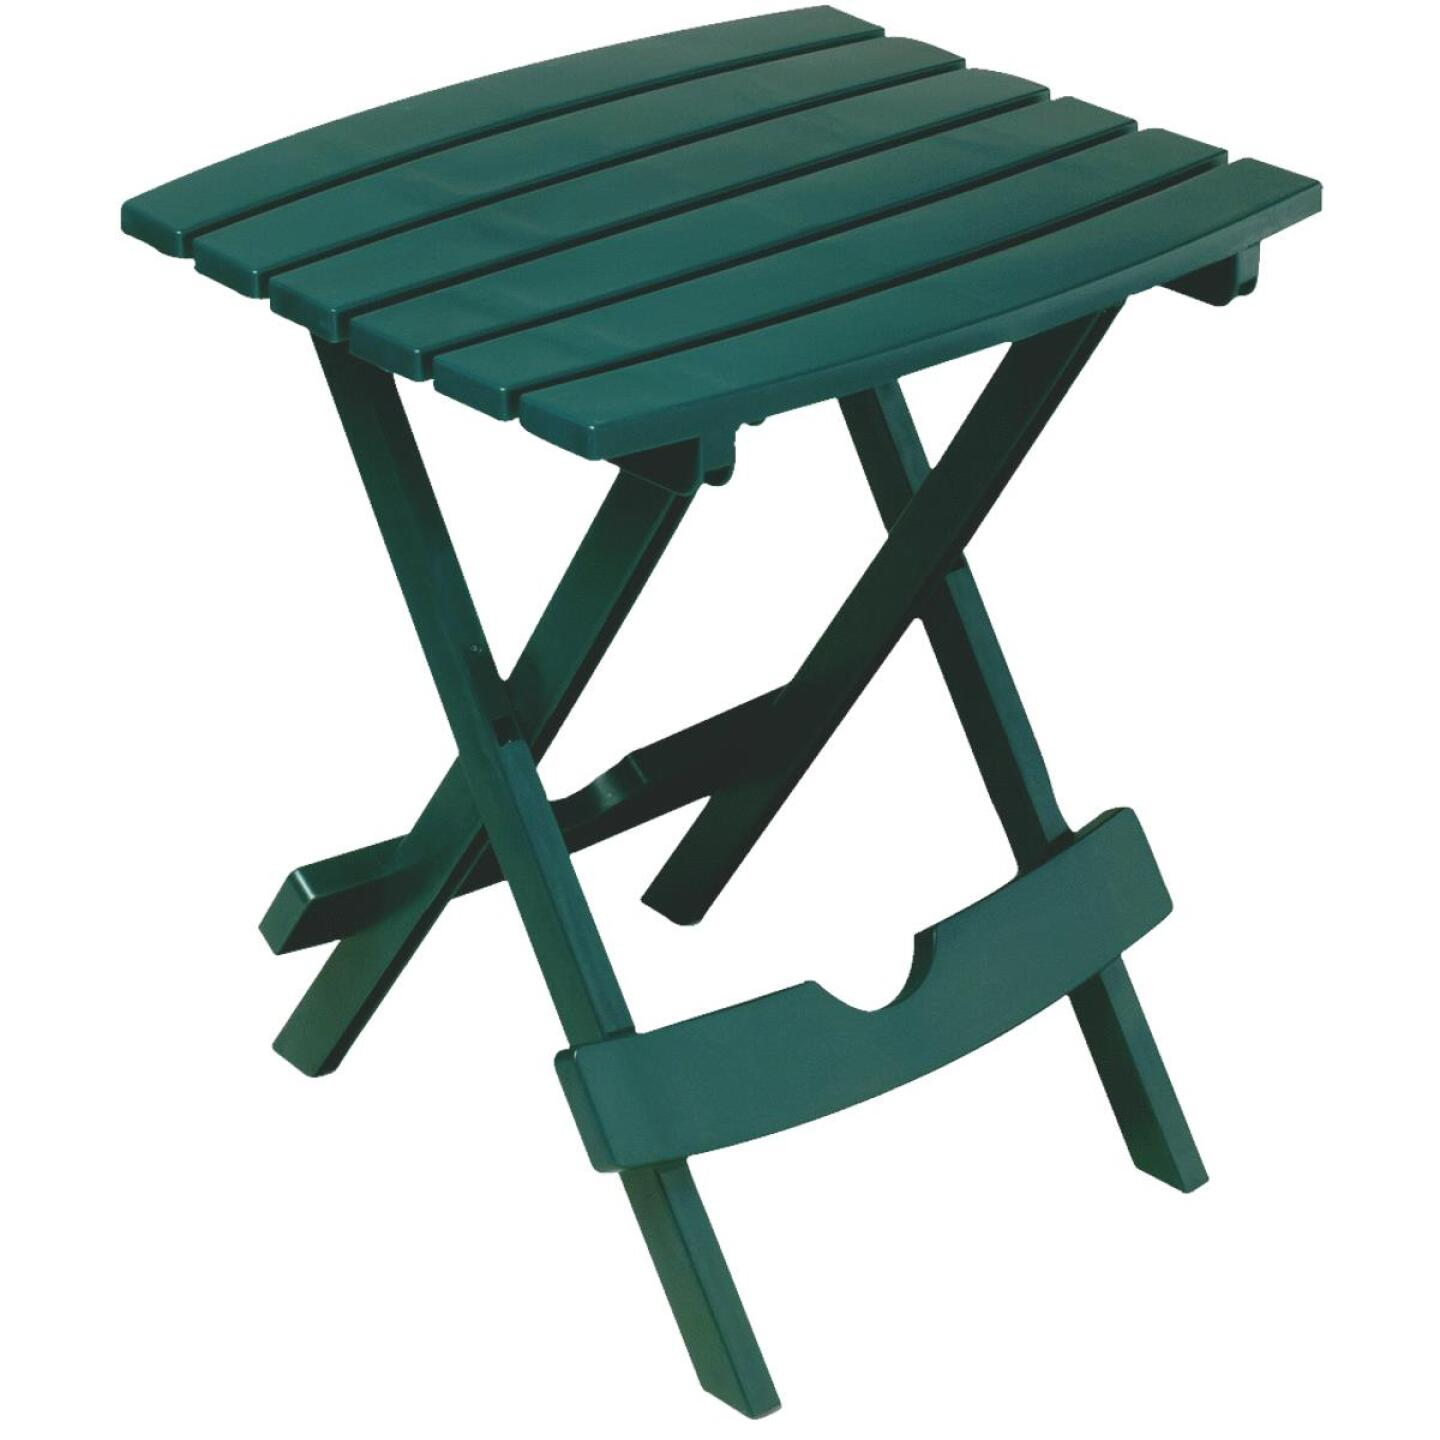 Adams Quik-Fold Hunter Green 15 In. x 17.5 In. Rectangle Resin Folding Side Table Image 1